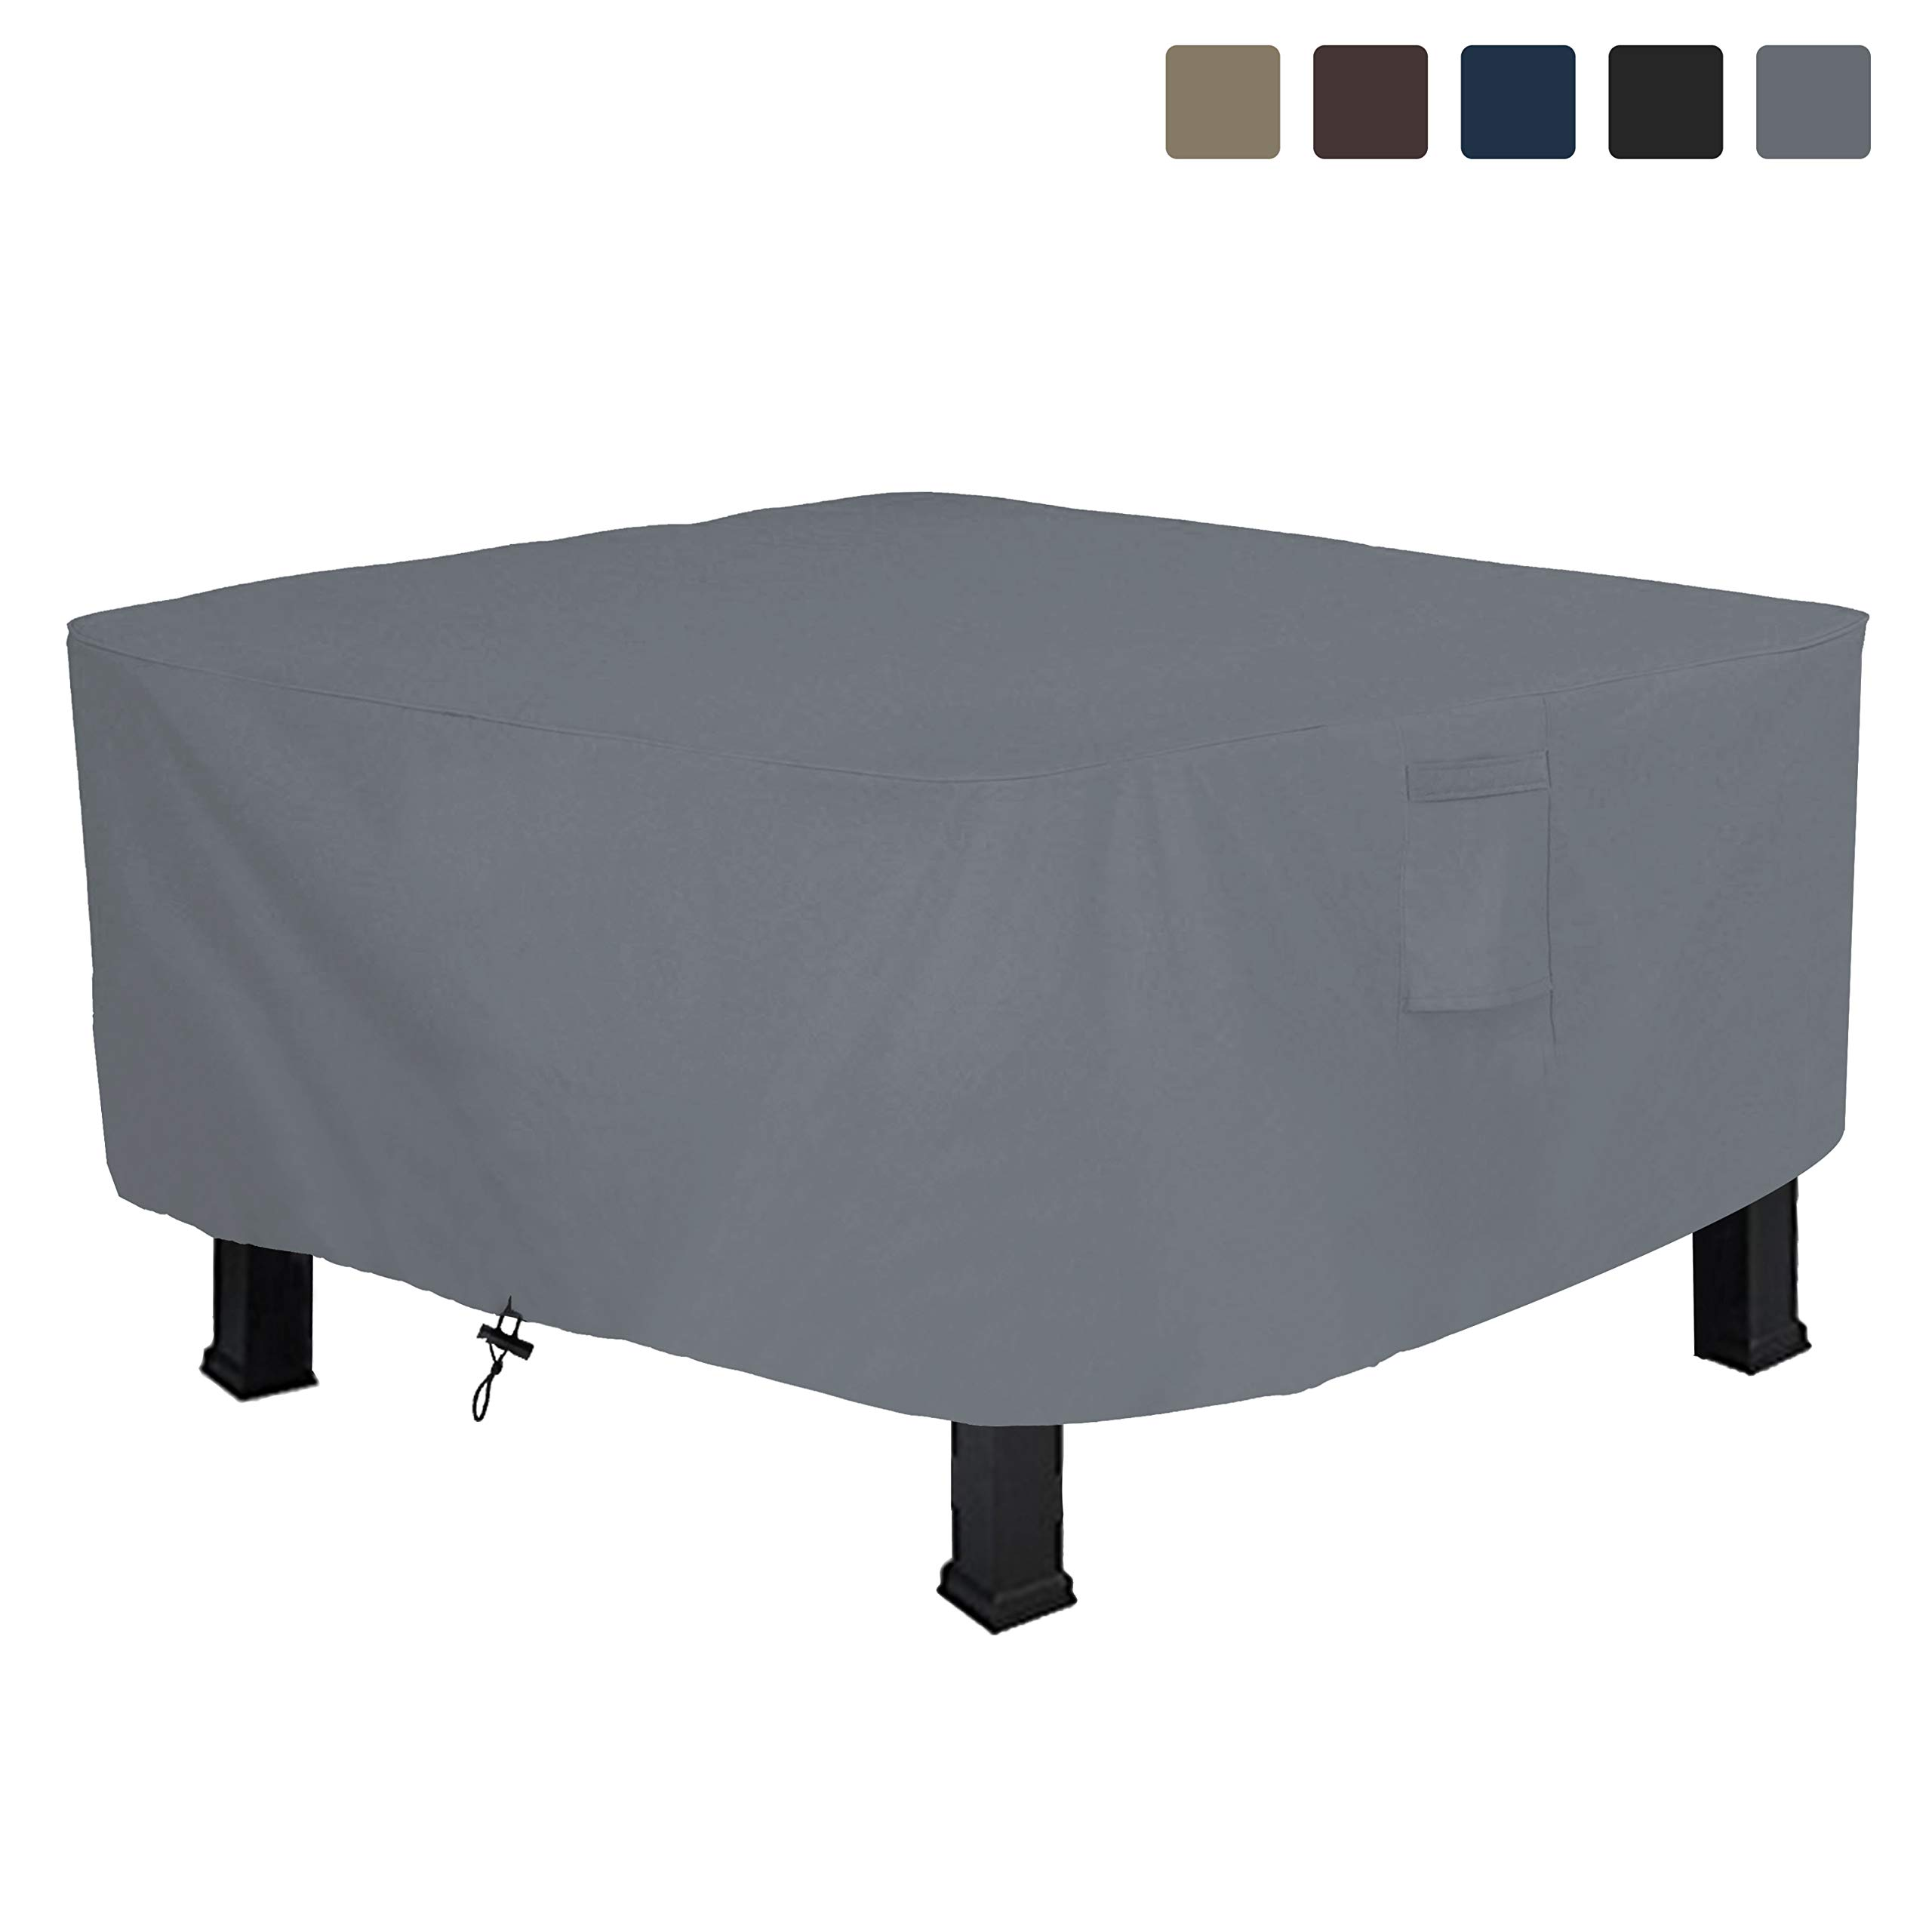 COVERS & ALL Fire Pit Cover Square 12 Oz Waterproof - 100% UV & Weather Resistant Custom Size Gas Fire Pit Cover with Air Pocket and Drawstring for Snug Fit (52'' L x 52'' W x 22'' H, Grey) by COVERS & ALL